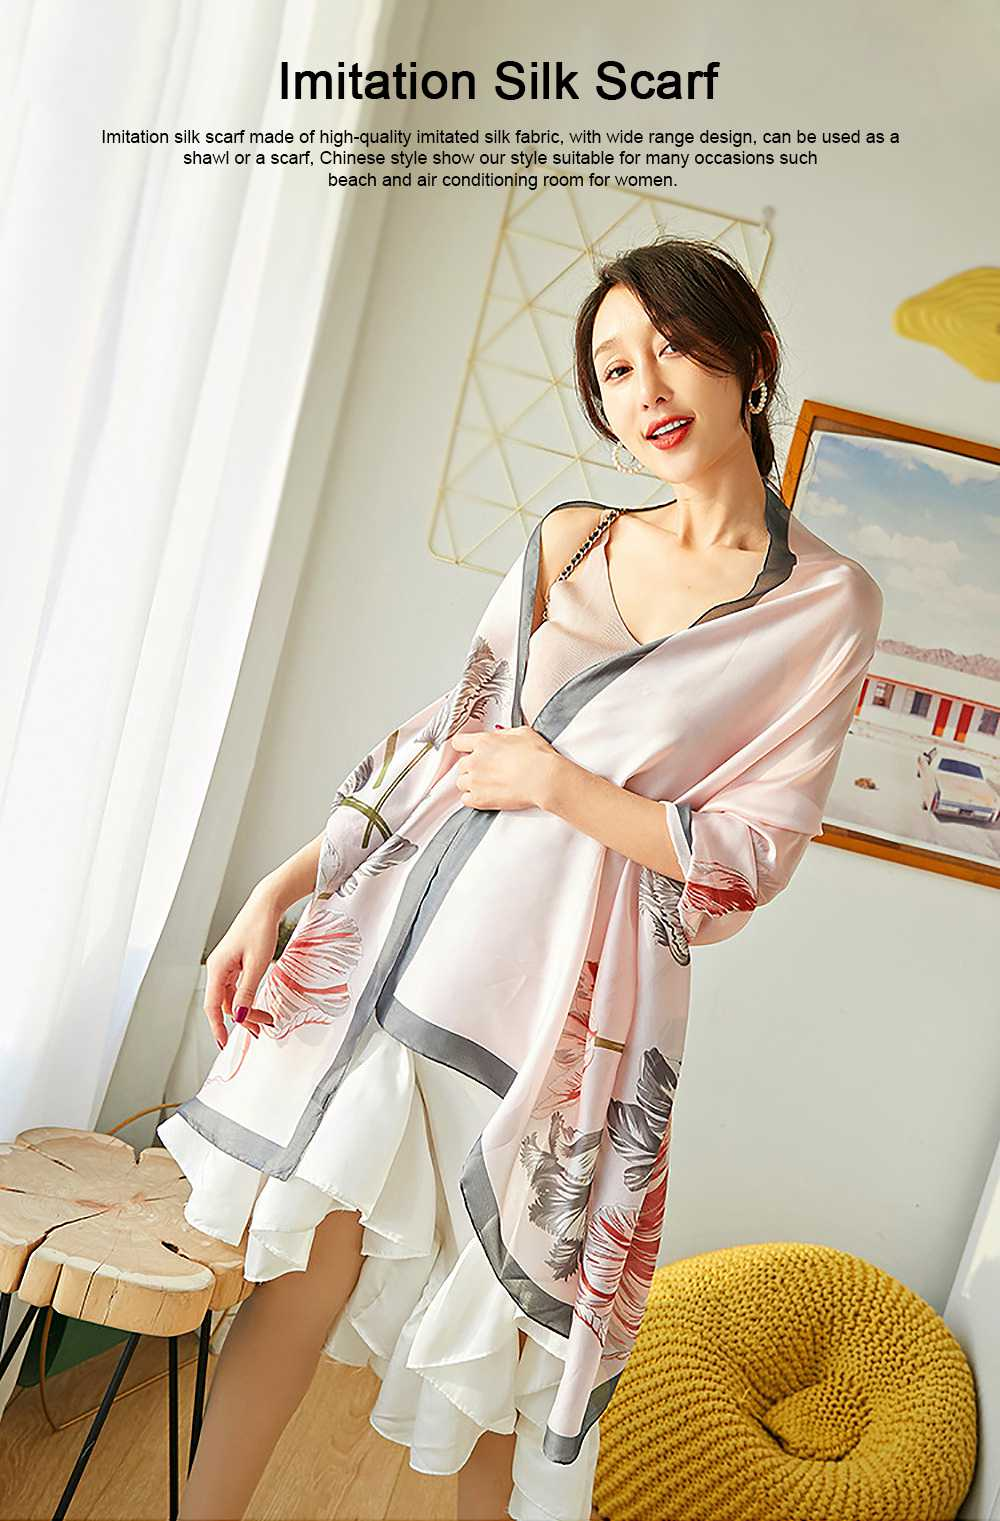 Imitation Silk Scarf for Women Chinese Style Square Shape Suitable for Many Occasions Shawl, Wide Range Scarves 0